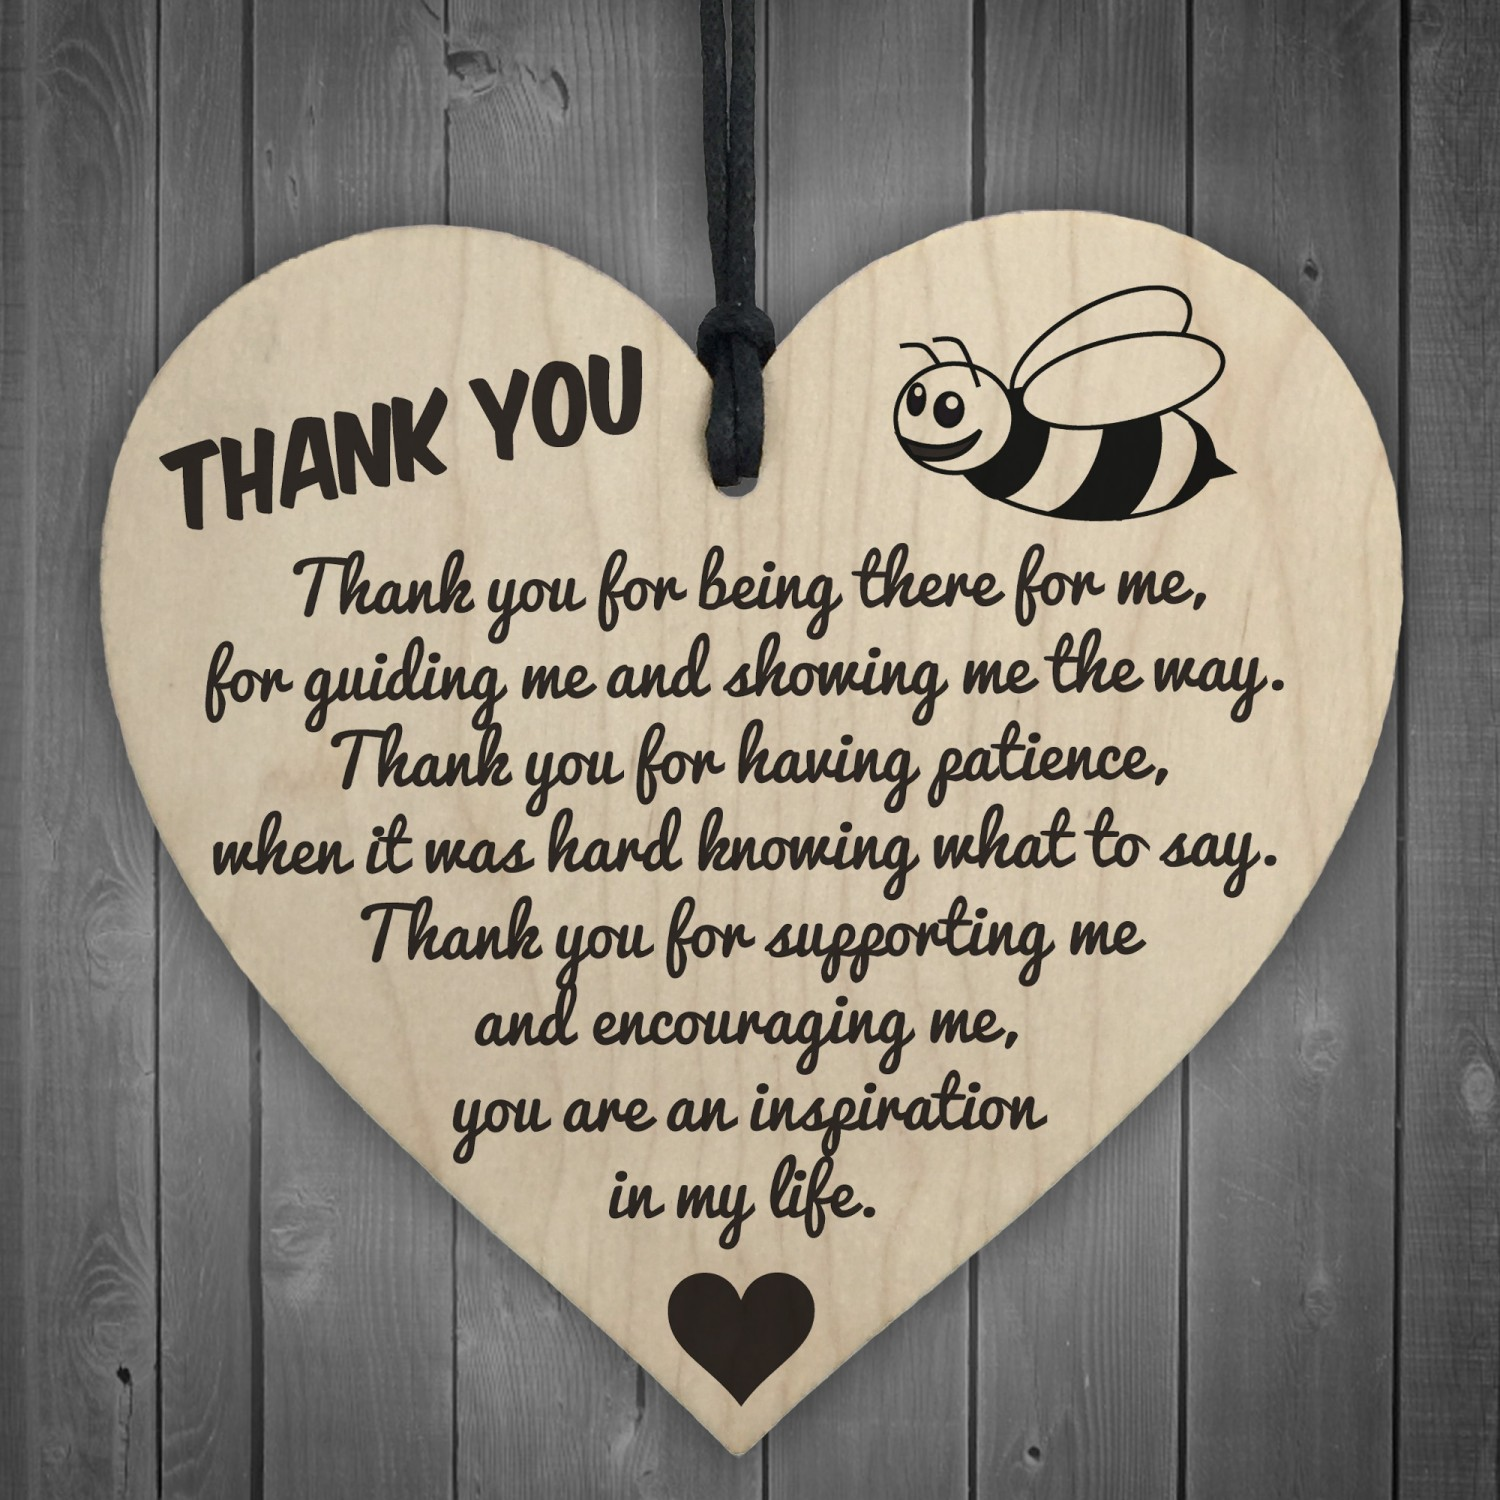 Thank You For Being There For Me Wooden Hanging Heart